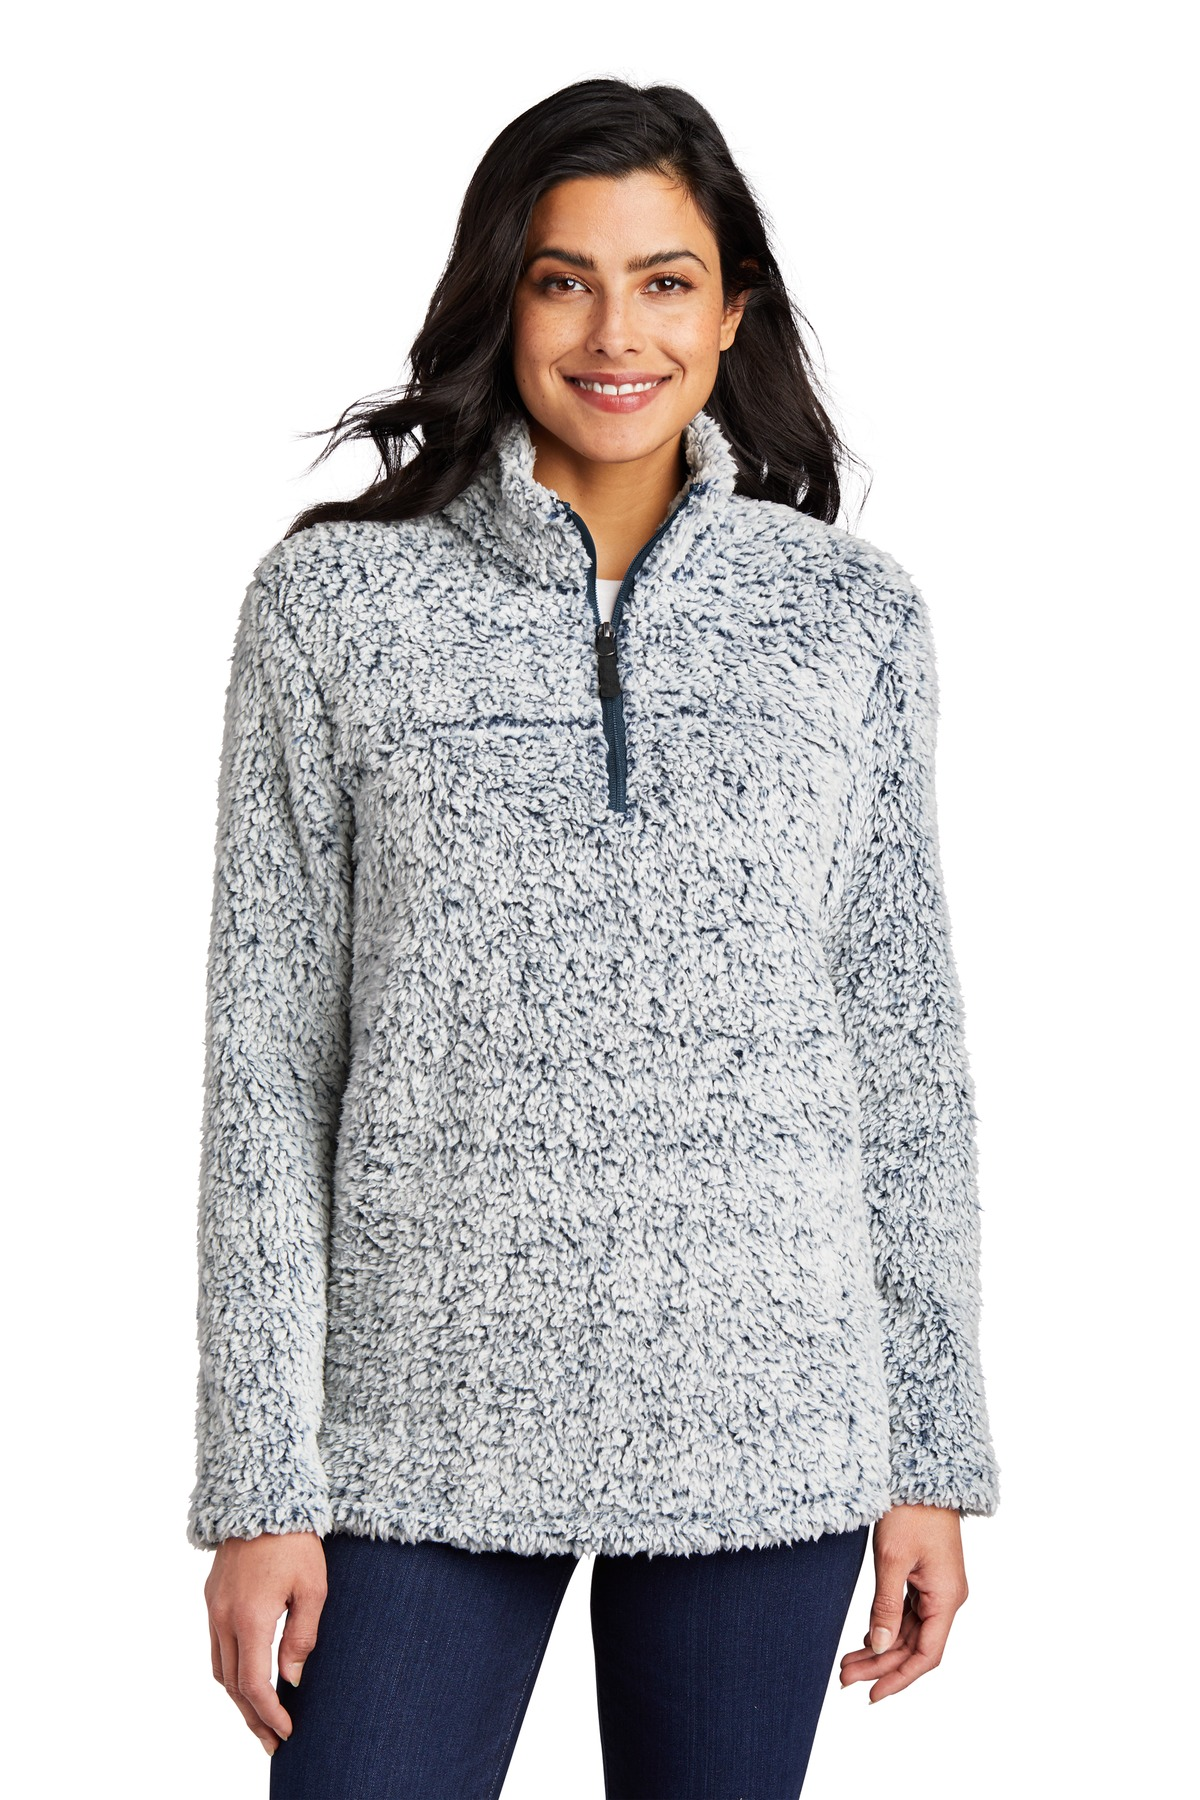 Port Authority  ®   Ladies Cozy 1/4-Zip Fleece L130 - Navy Heather